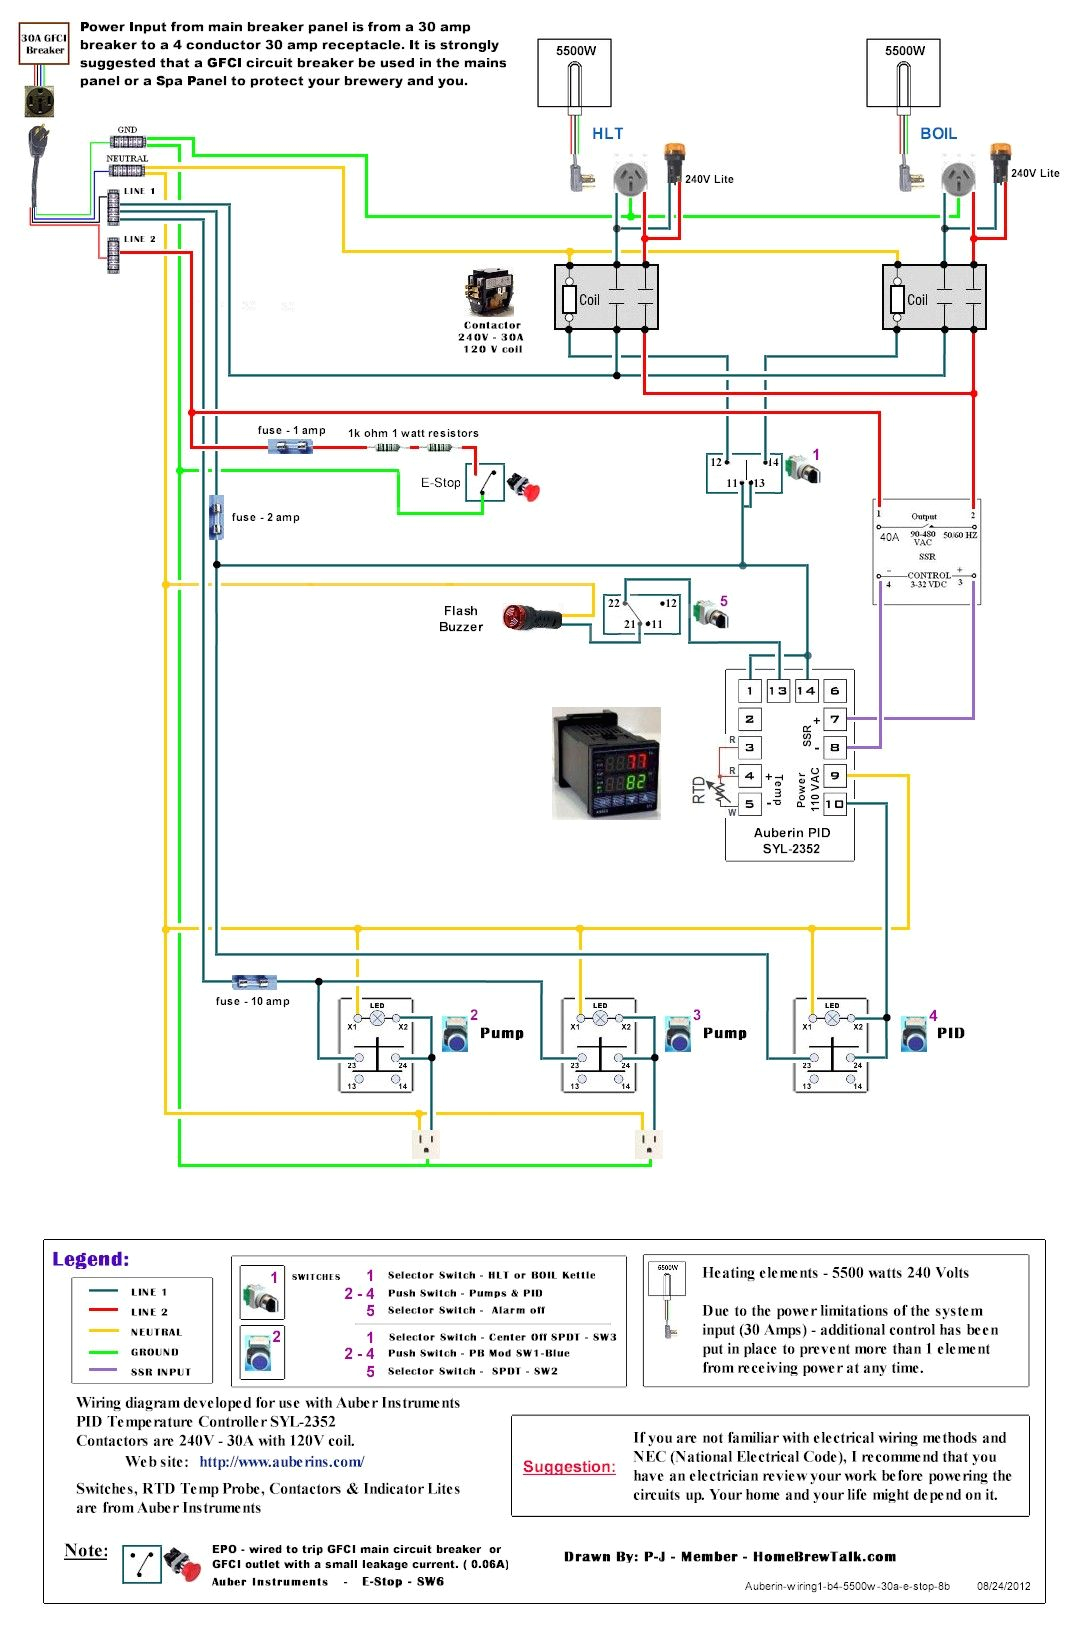 Electric Brewery Wiring Diagram 220v 30a Wiring Diagram Help Page 2 Home Brew forums Brewery